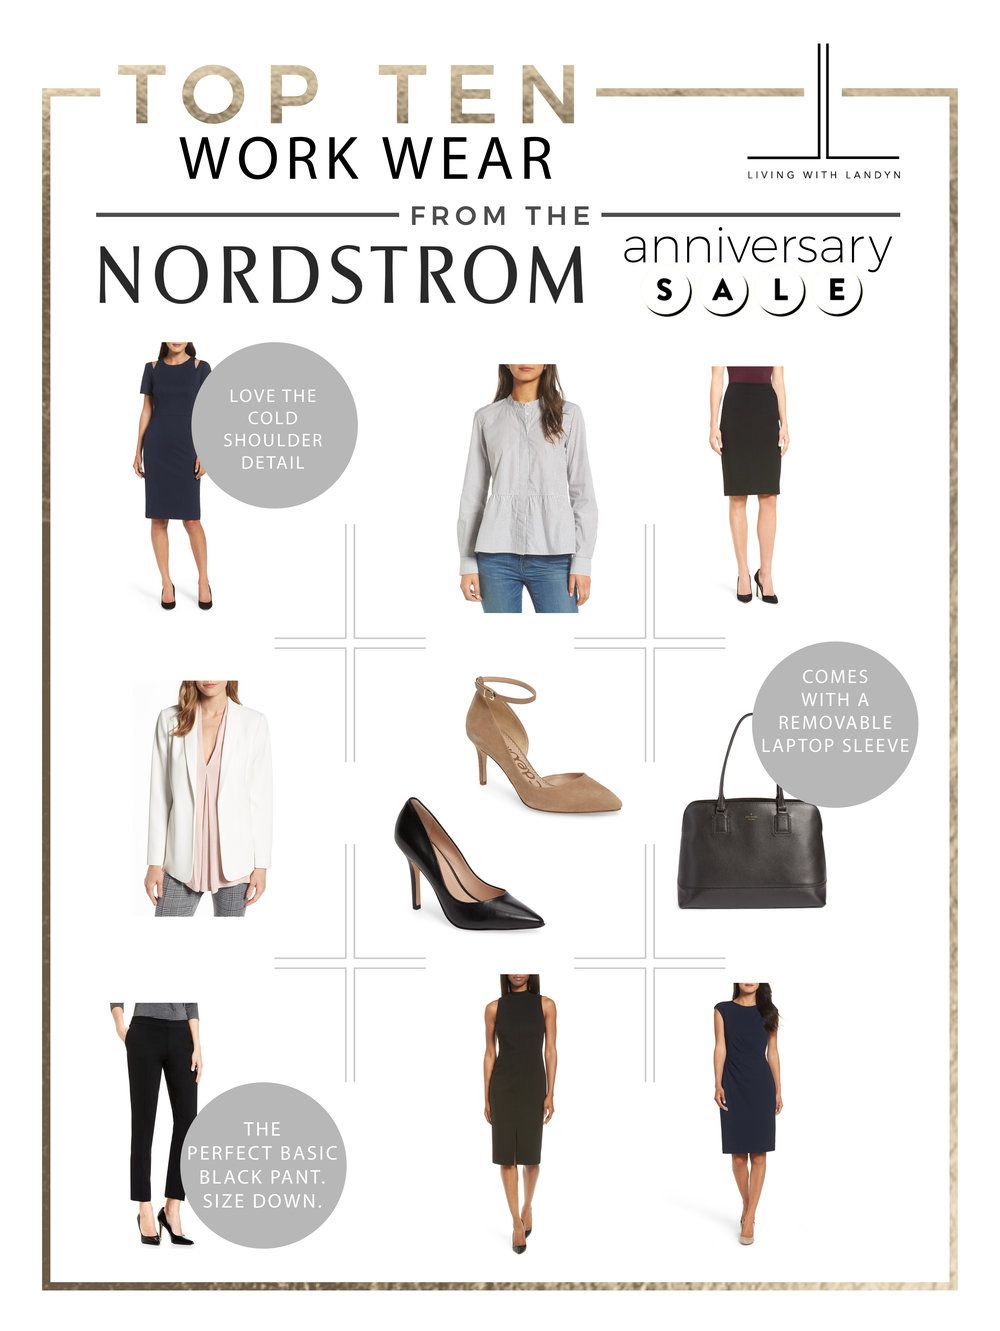 TOP 10 WORK WEAR PICKS NORDSTROM ANNIVERSARY SALE